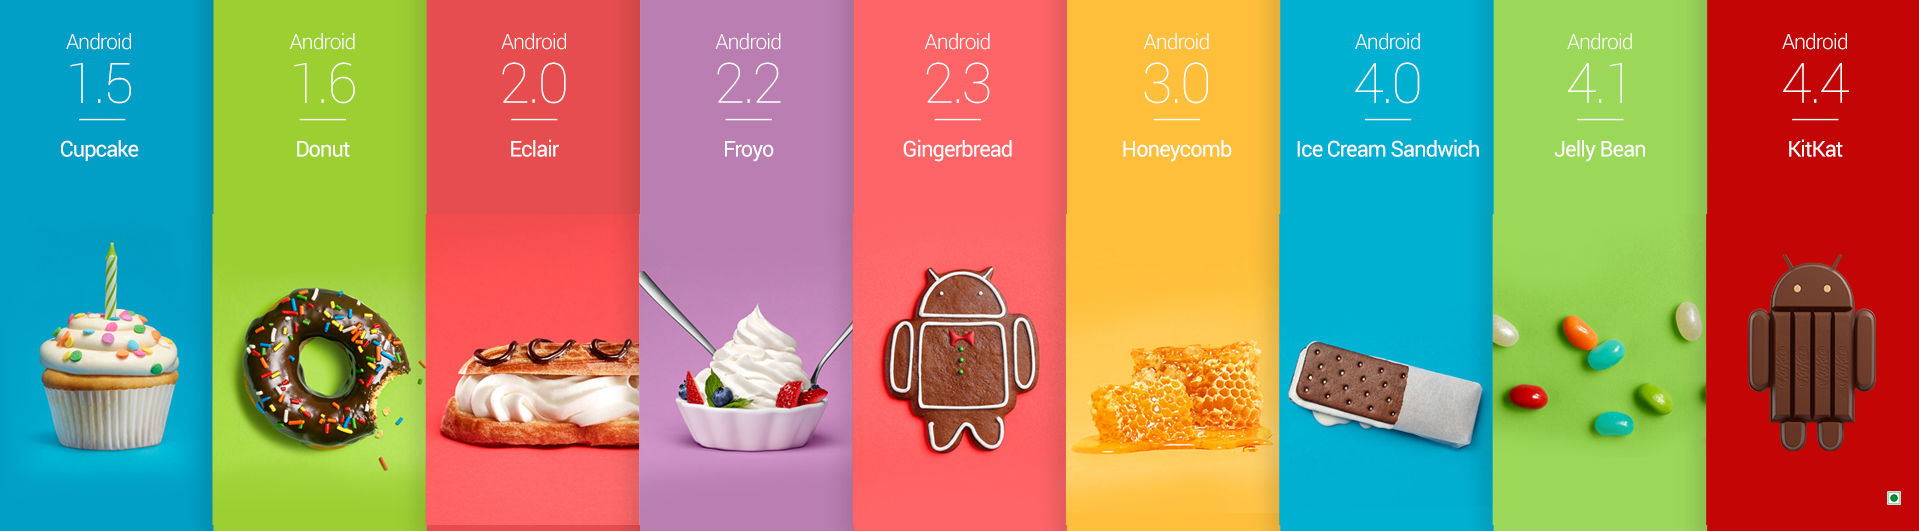 timeline history of android smartphones that were launched with android os versions